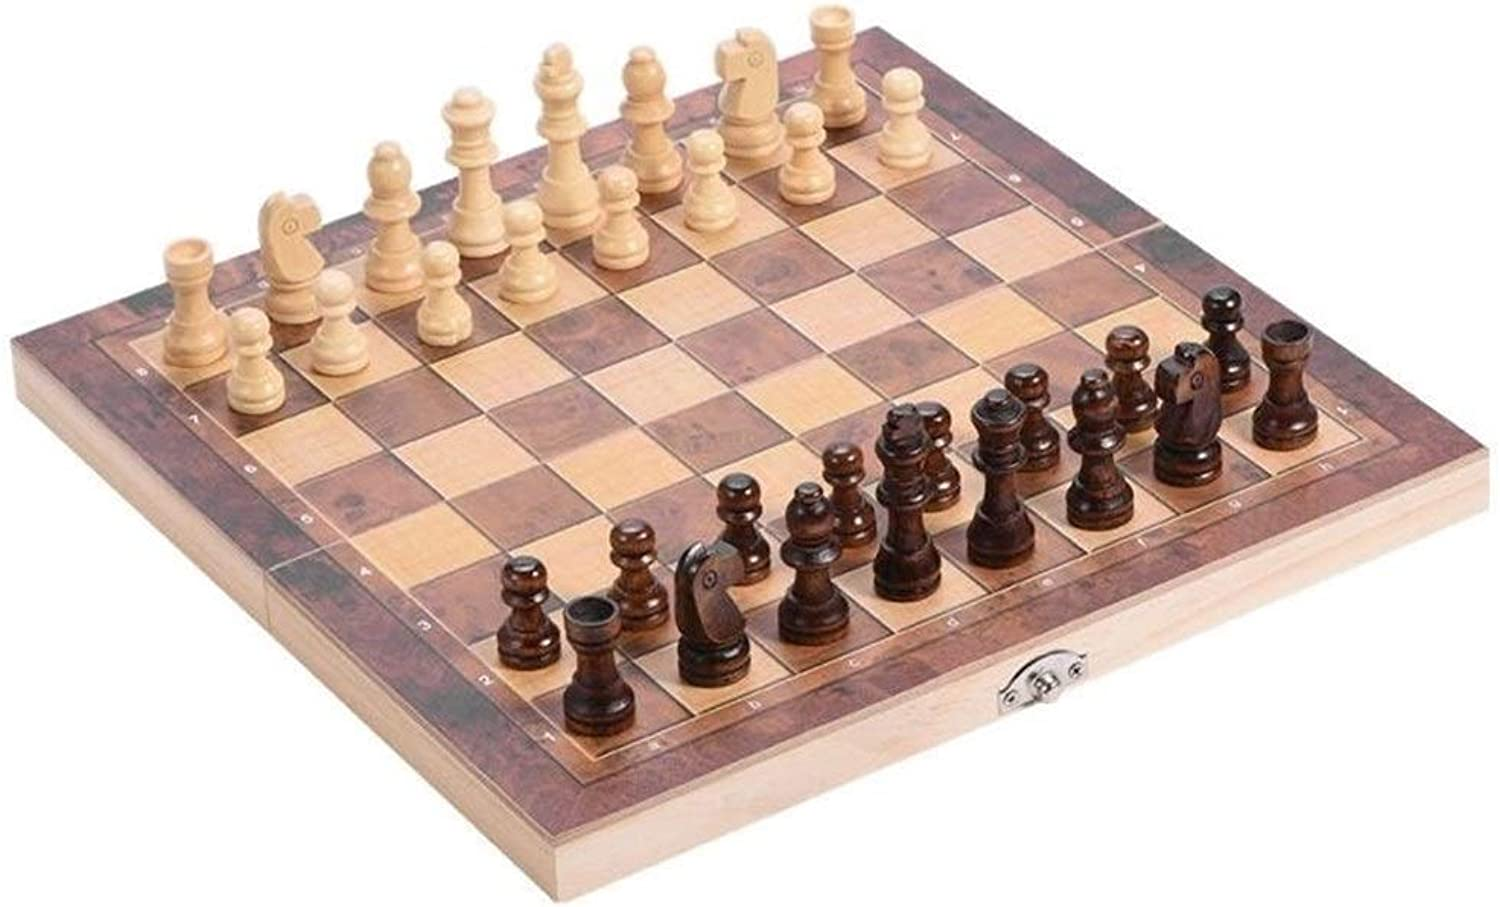 BEITAI 3 in 1 Portable Wooden Chessboard Folding Board Chess Game International Chess Set for Party Family Activities ( Size   34 x 34cm )